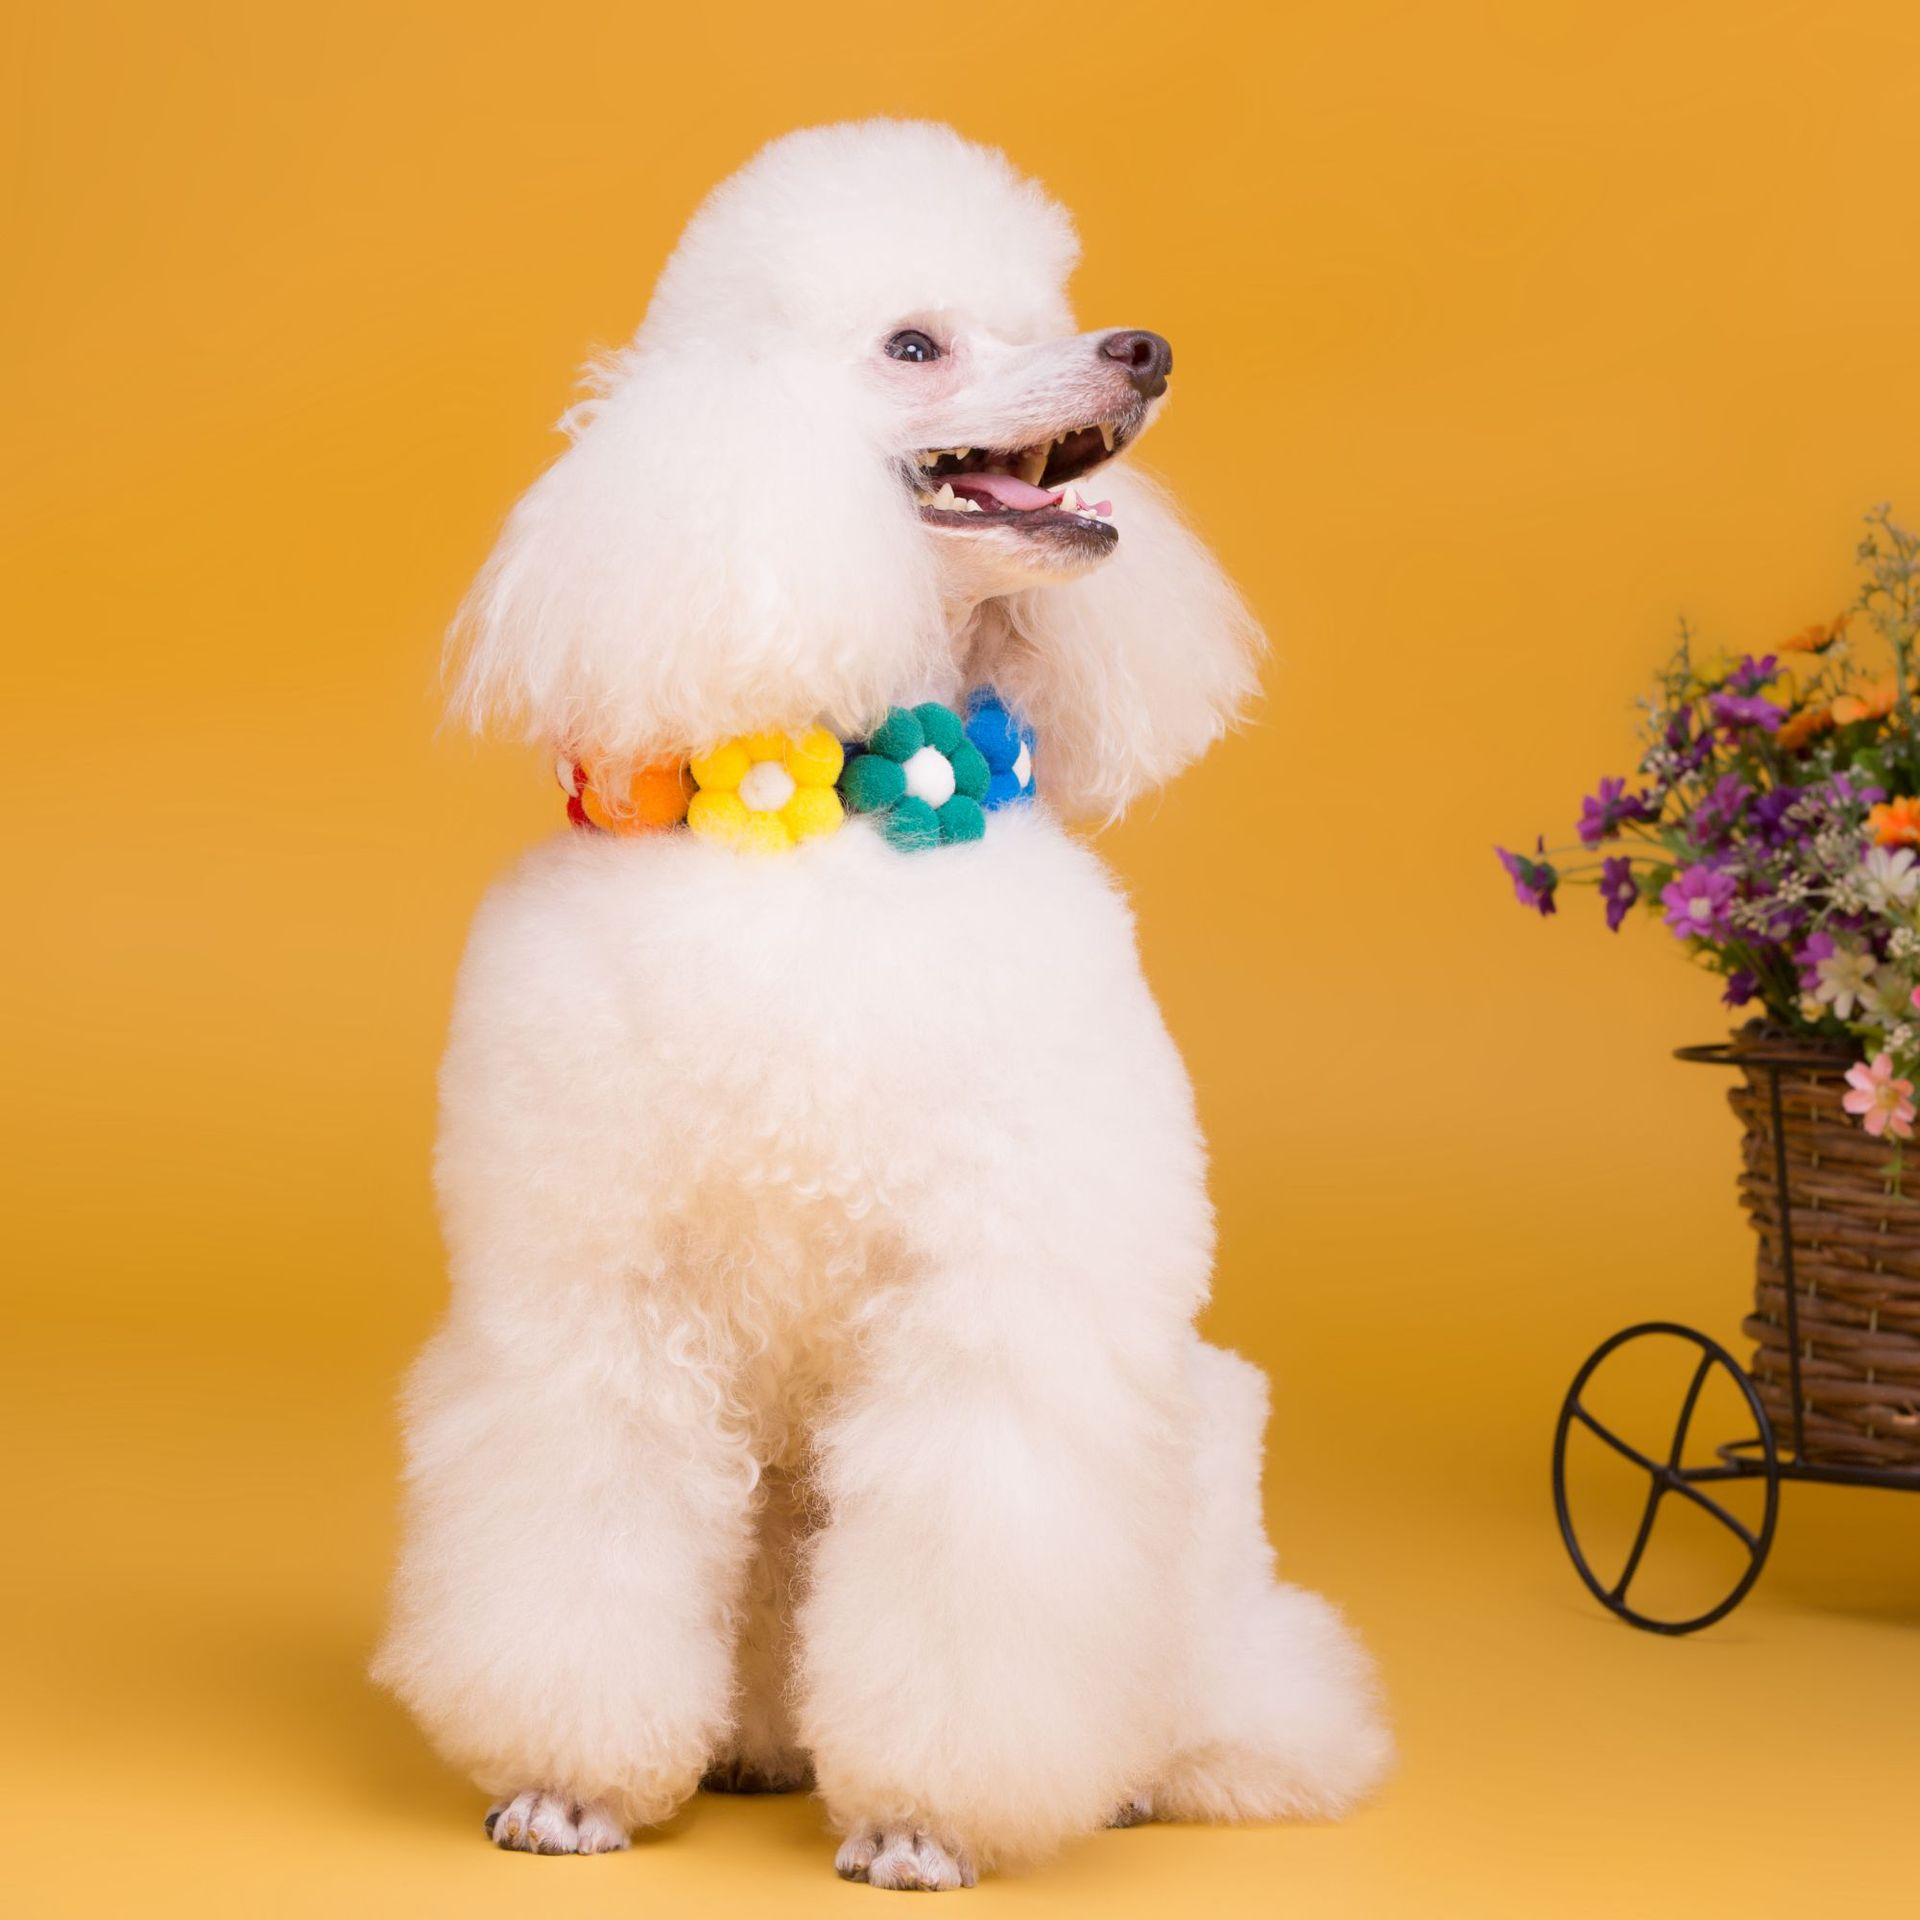 Qingyang grocery store pet collar new pet products quality Korean pet accessories pet neck accessories